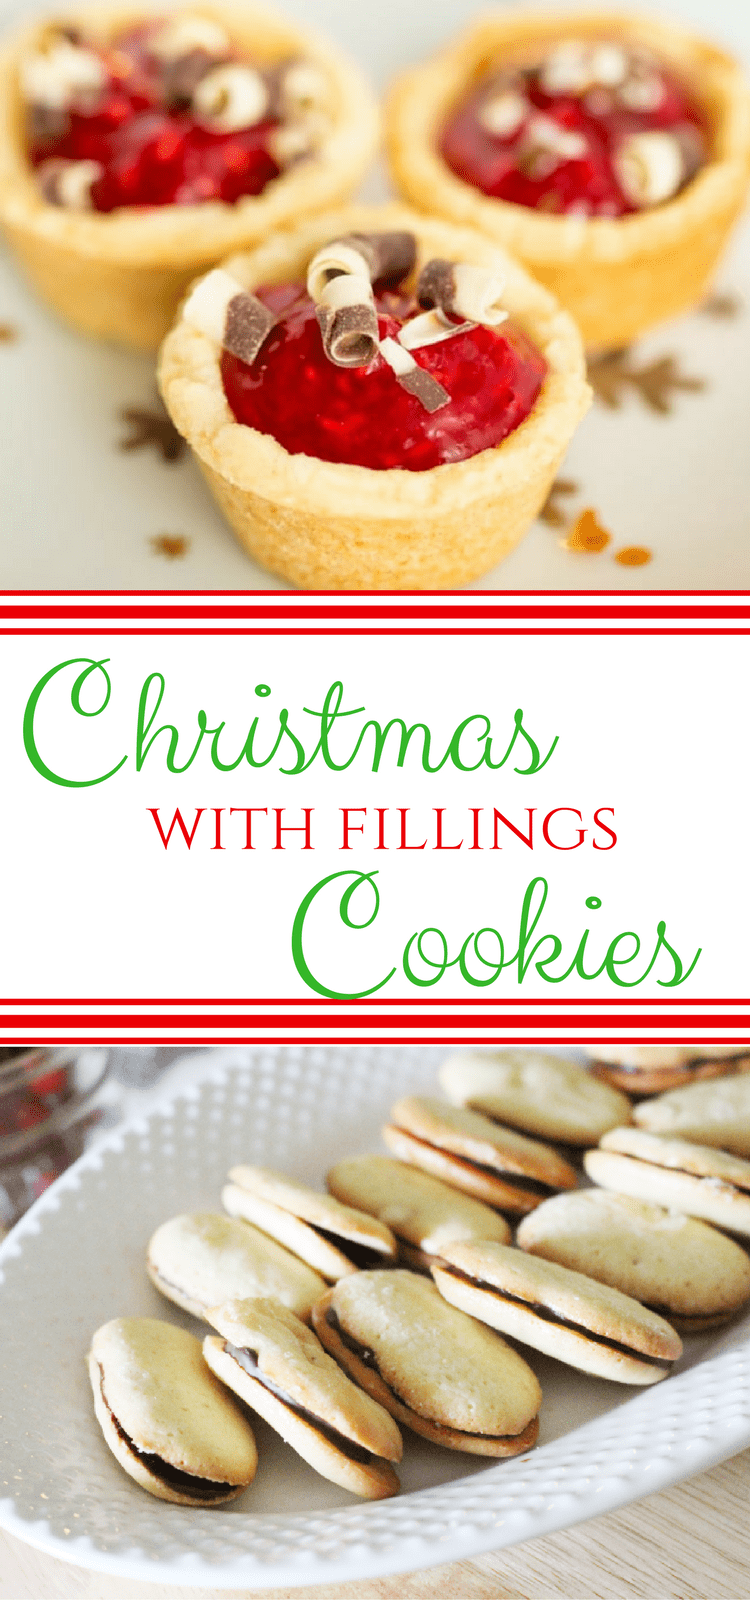 Cookies with fillings, you know the ones (think ganache, caramel, jams etc!) delicious little treats that can be added to your Holiday cookie swap! #ChristmasCookies #CookieSwap #CookieRecipes